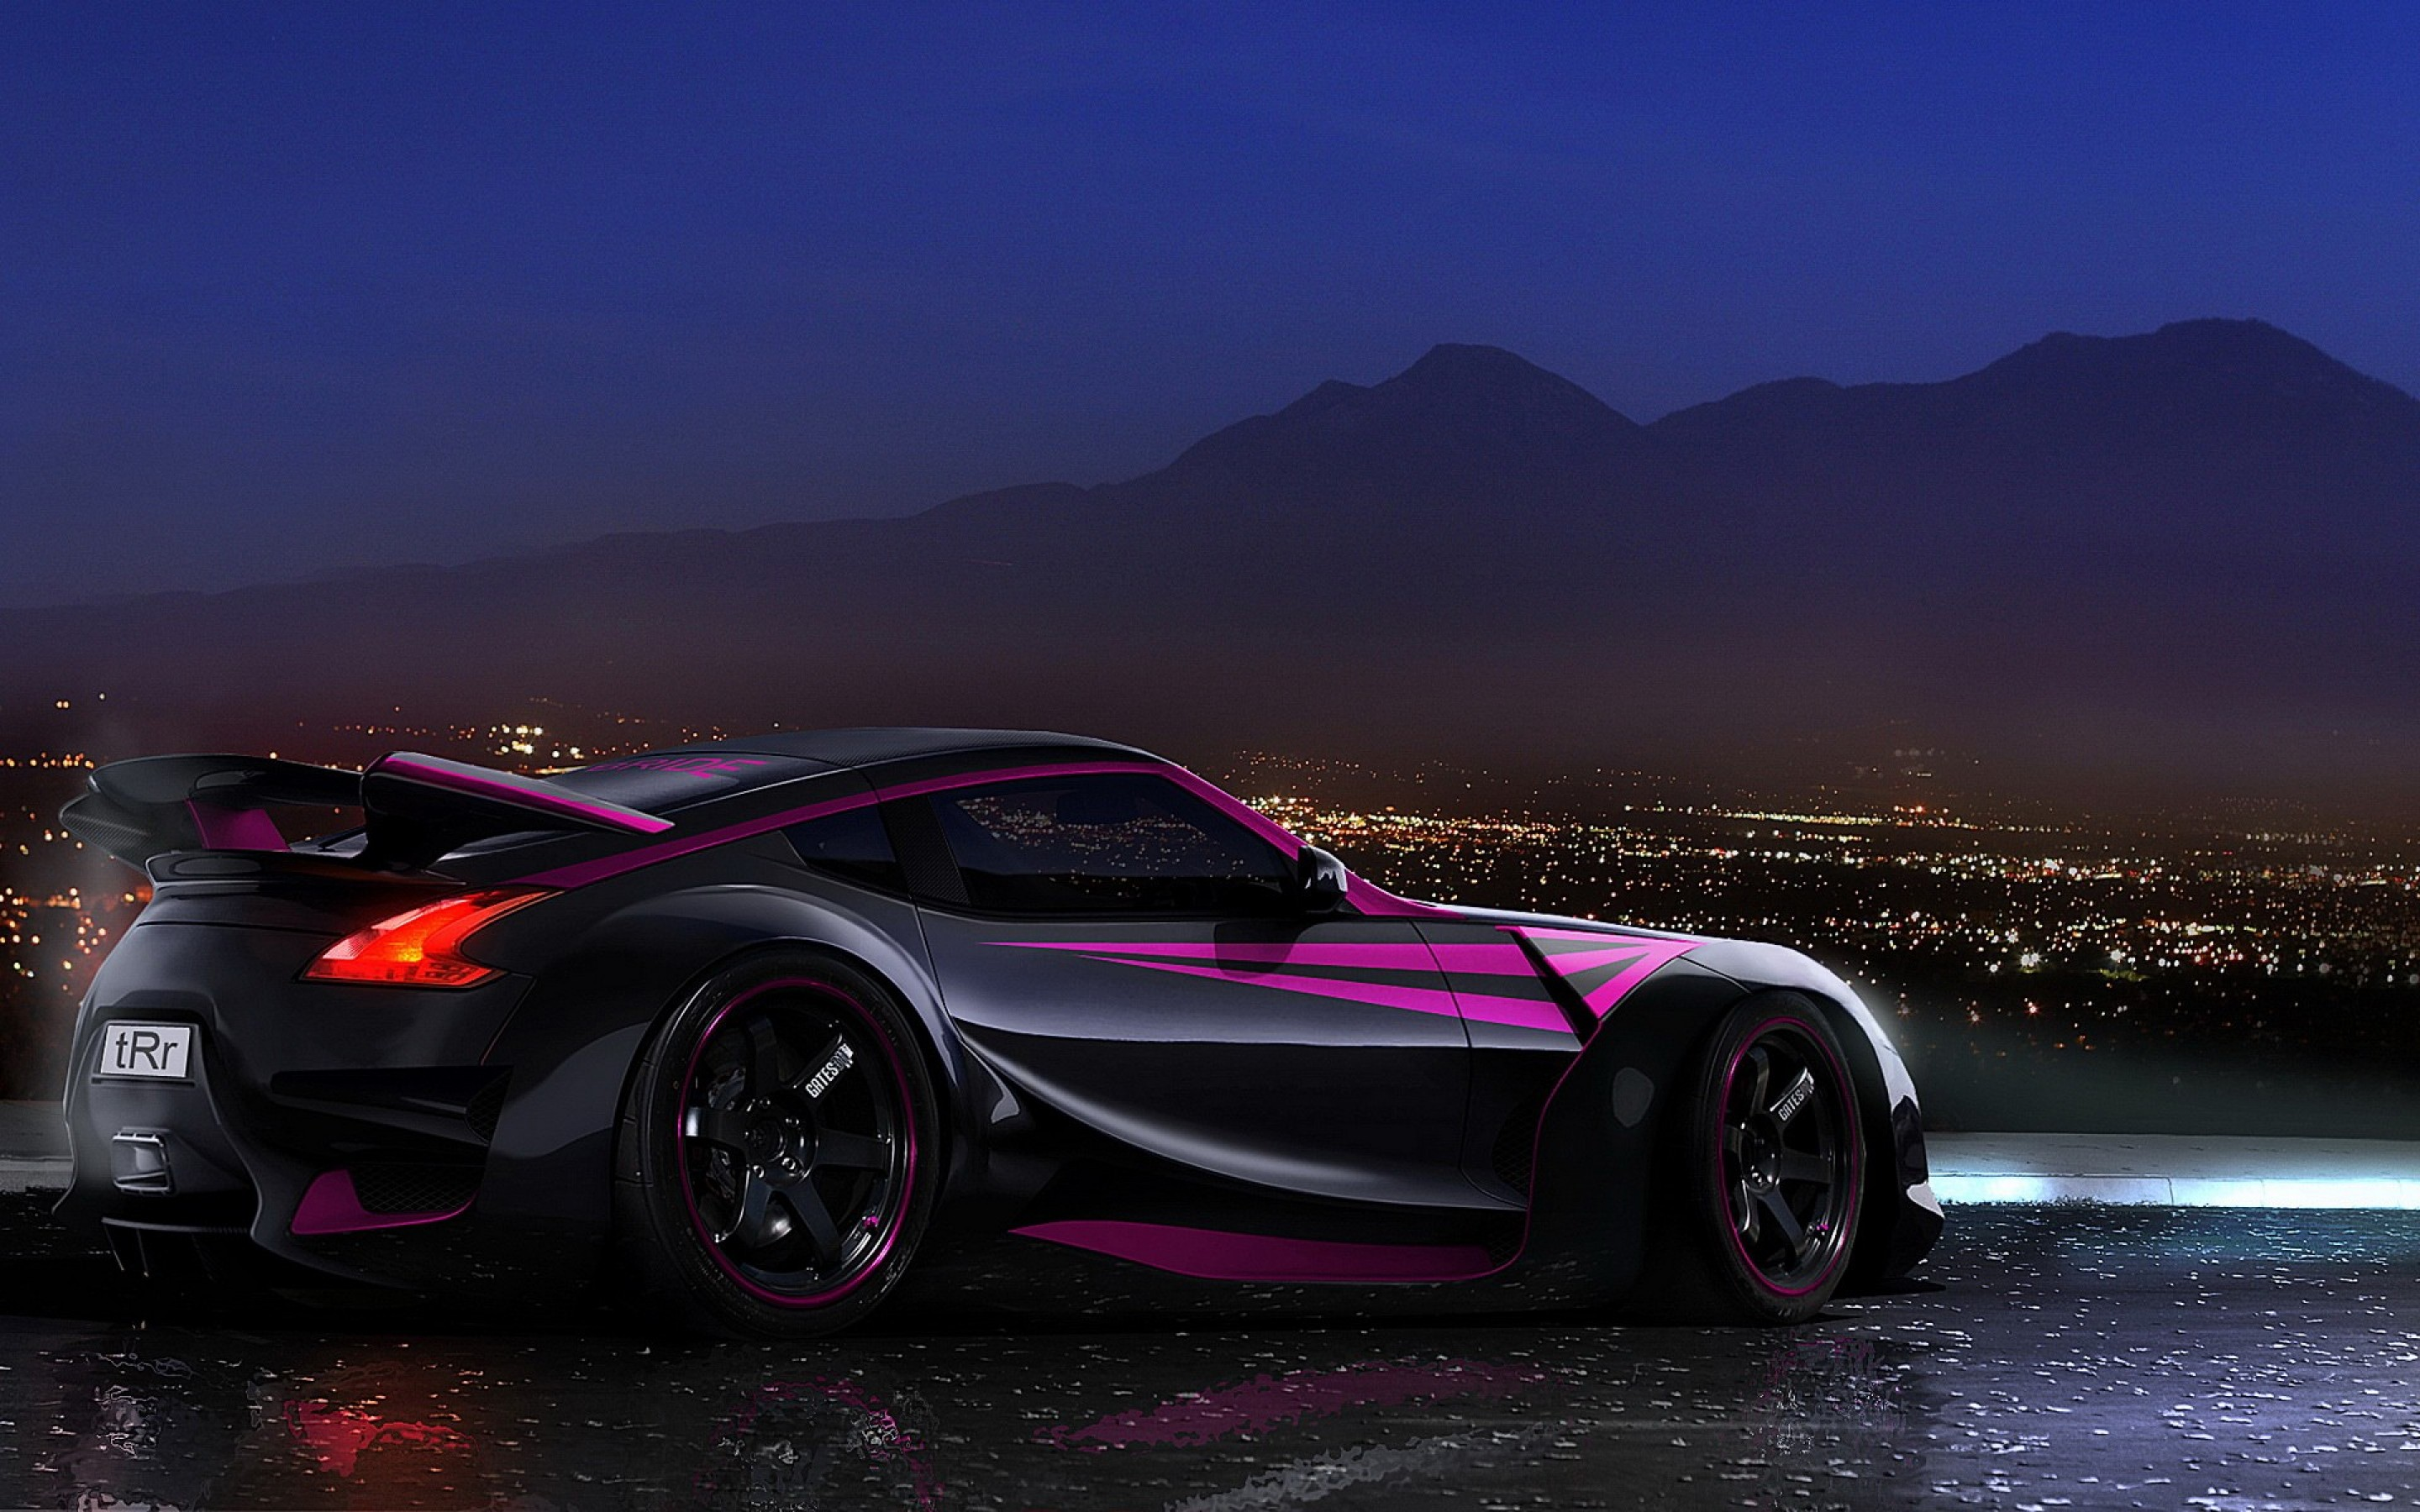 Hd Car Wallpapers For Mobile 28 Wallpapers: Black Sports Car Wallpaper